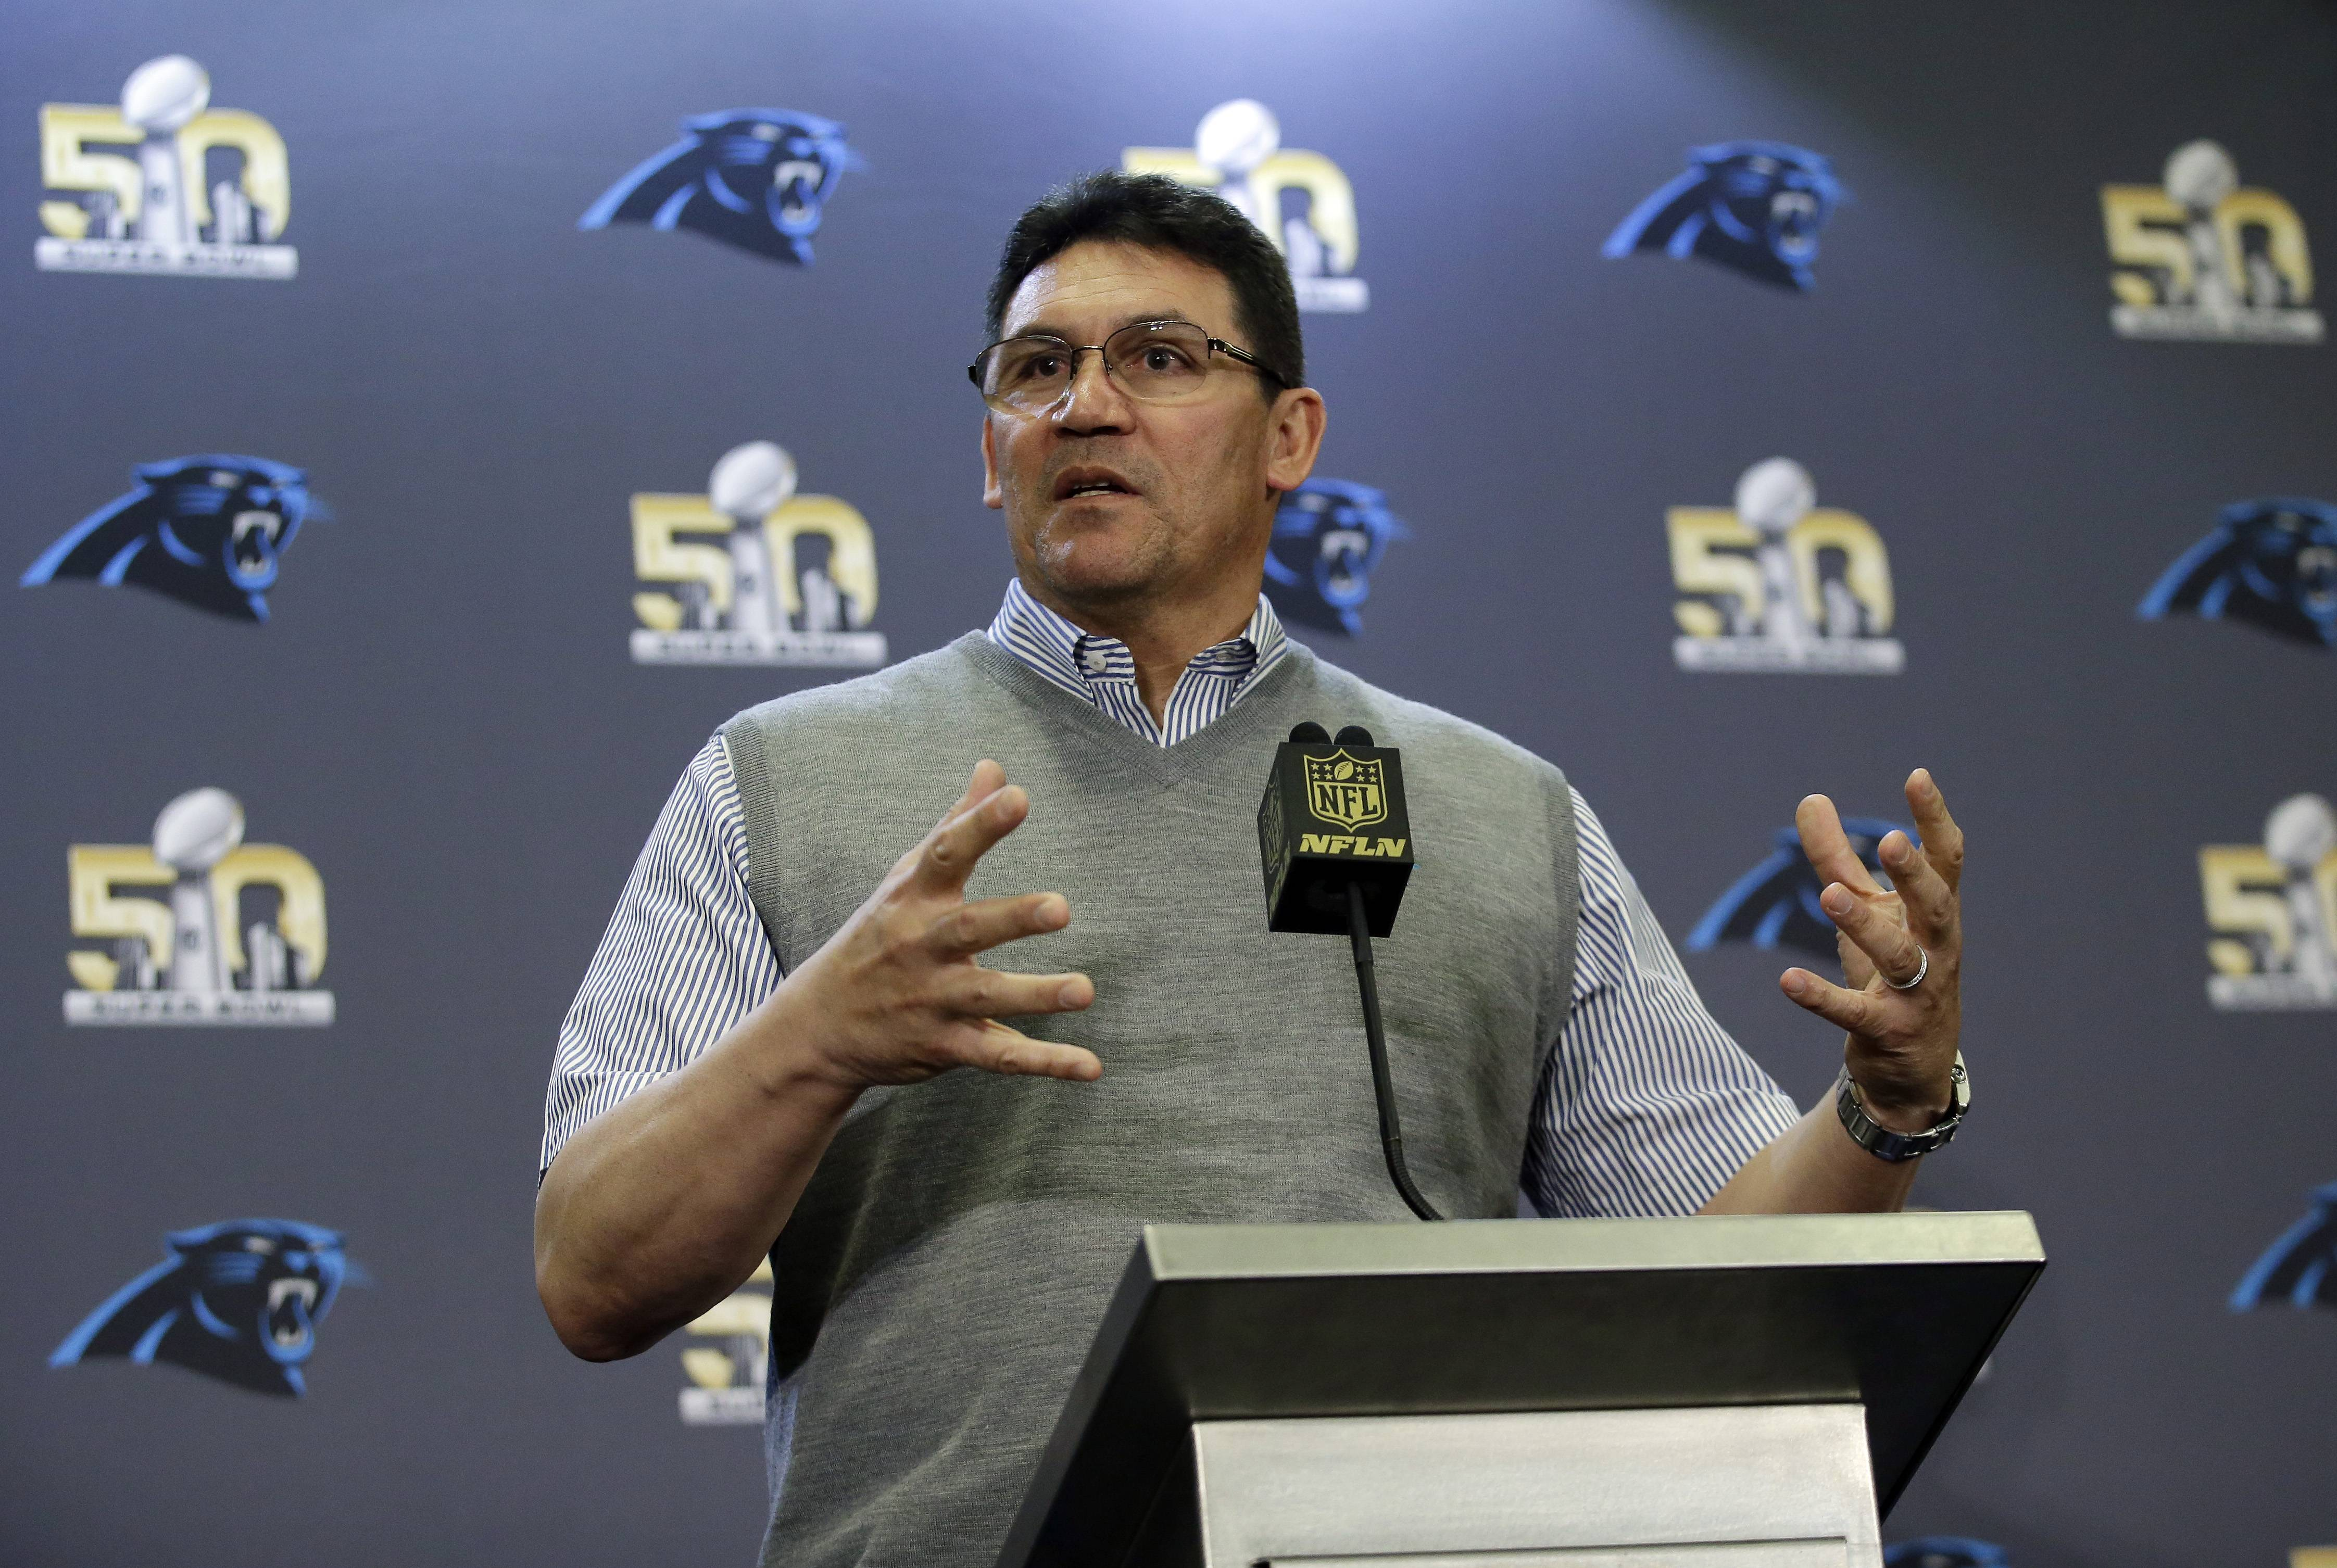 Thirty years removed from his days as a backup linebacker for the Super Bowl XX champion Chicago Bears, Carolina Panthers head coach Ron Rivera prepares his team to take on the Denver Broncos in Super Bowl 50 on Sunday.